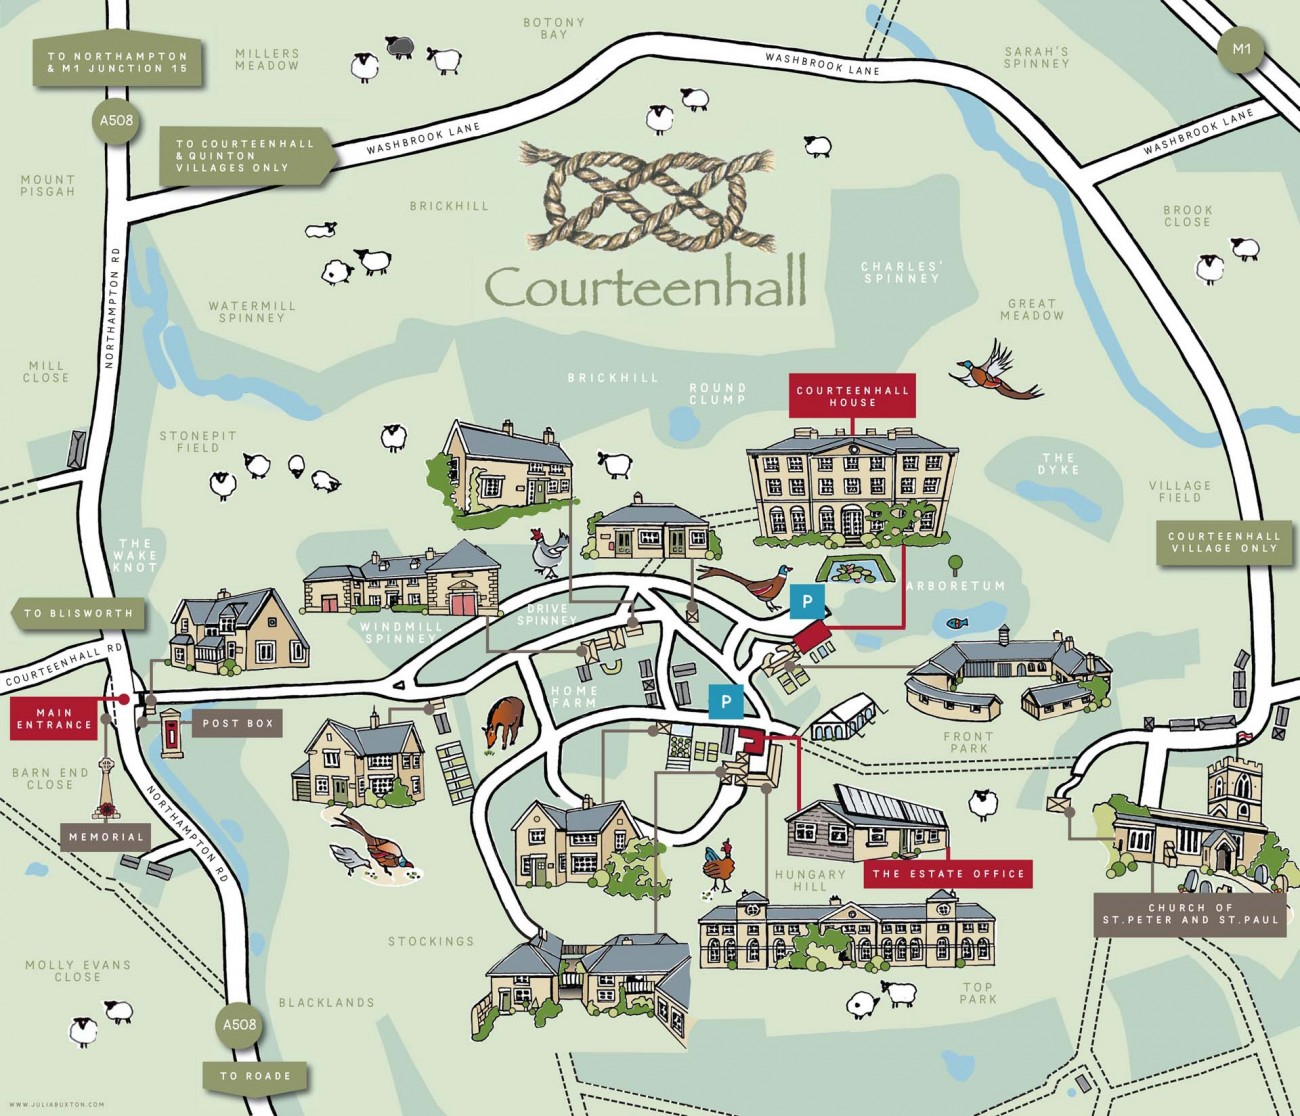 Courteenhall Estate Illustrated Map AW (Hall & Office Named Only) LOW RES_1.jpg